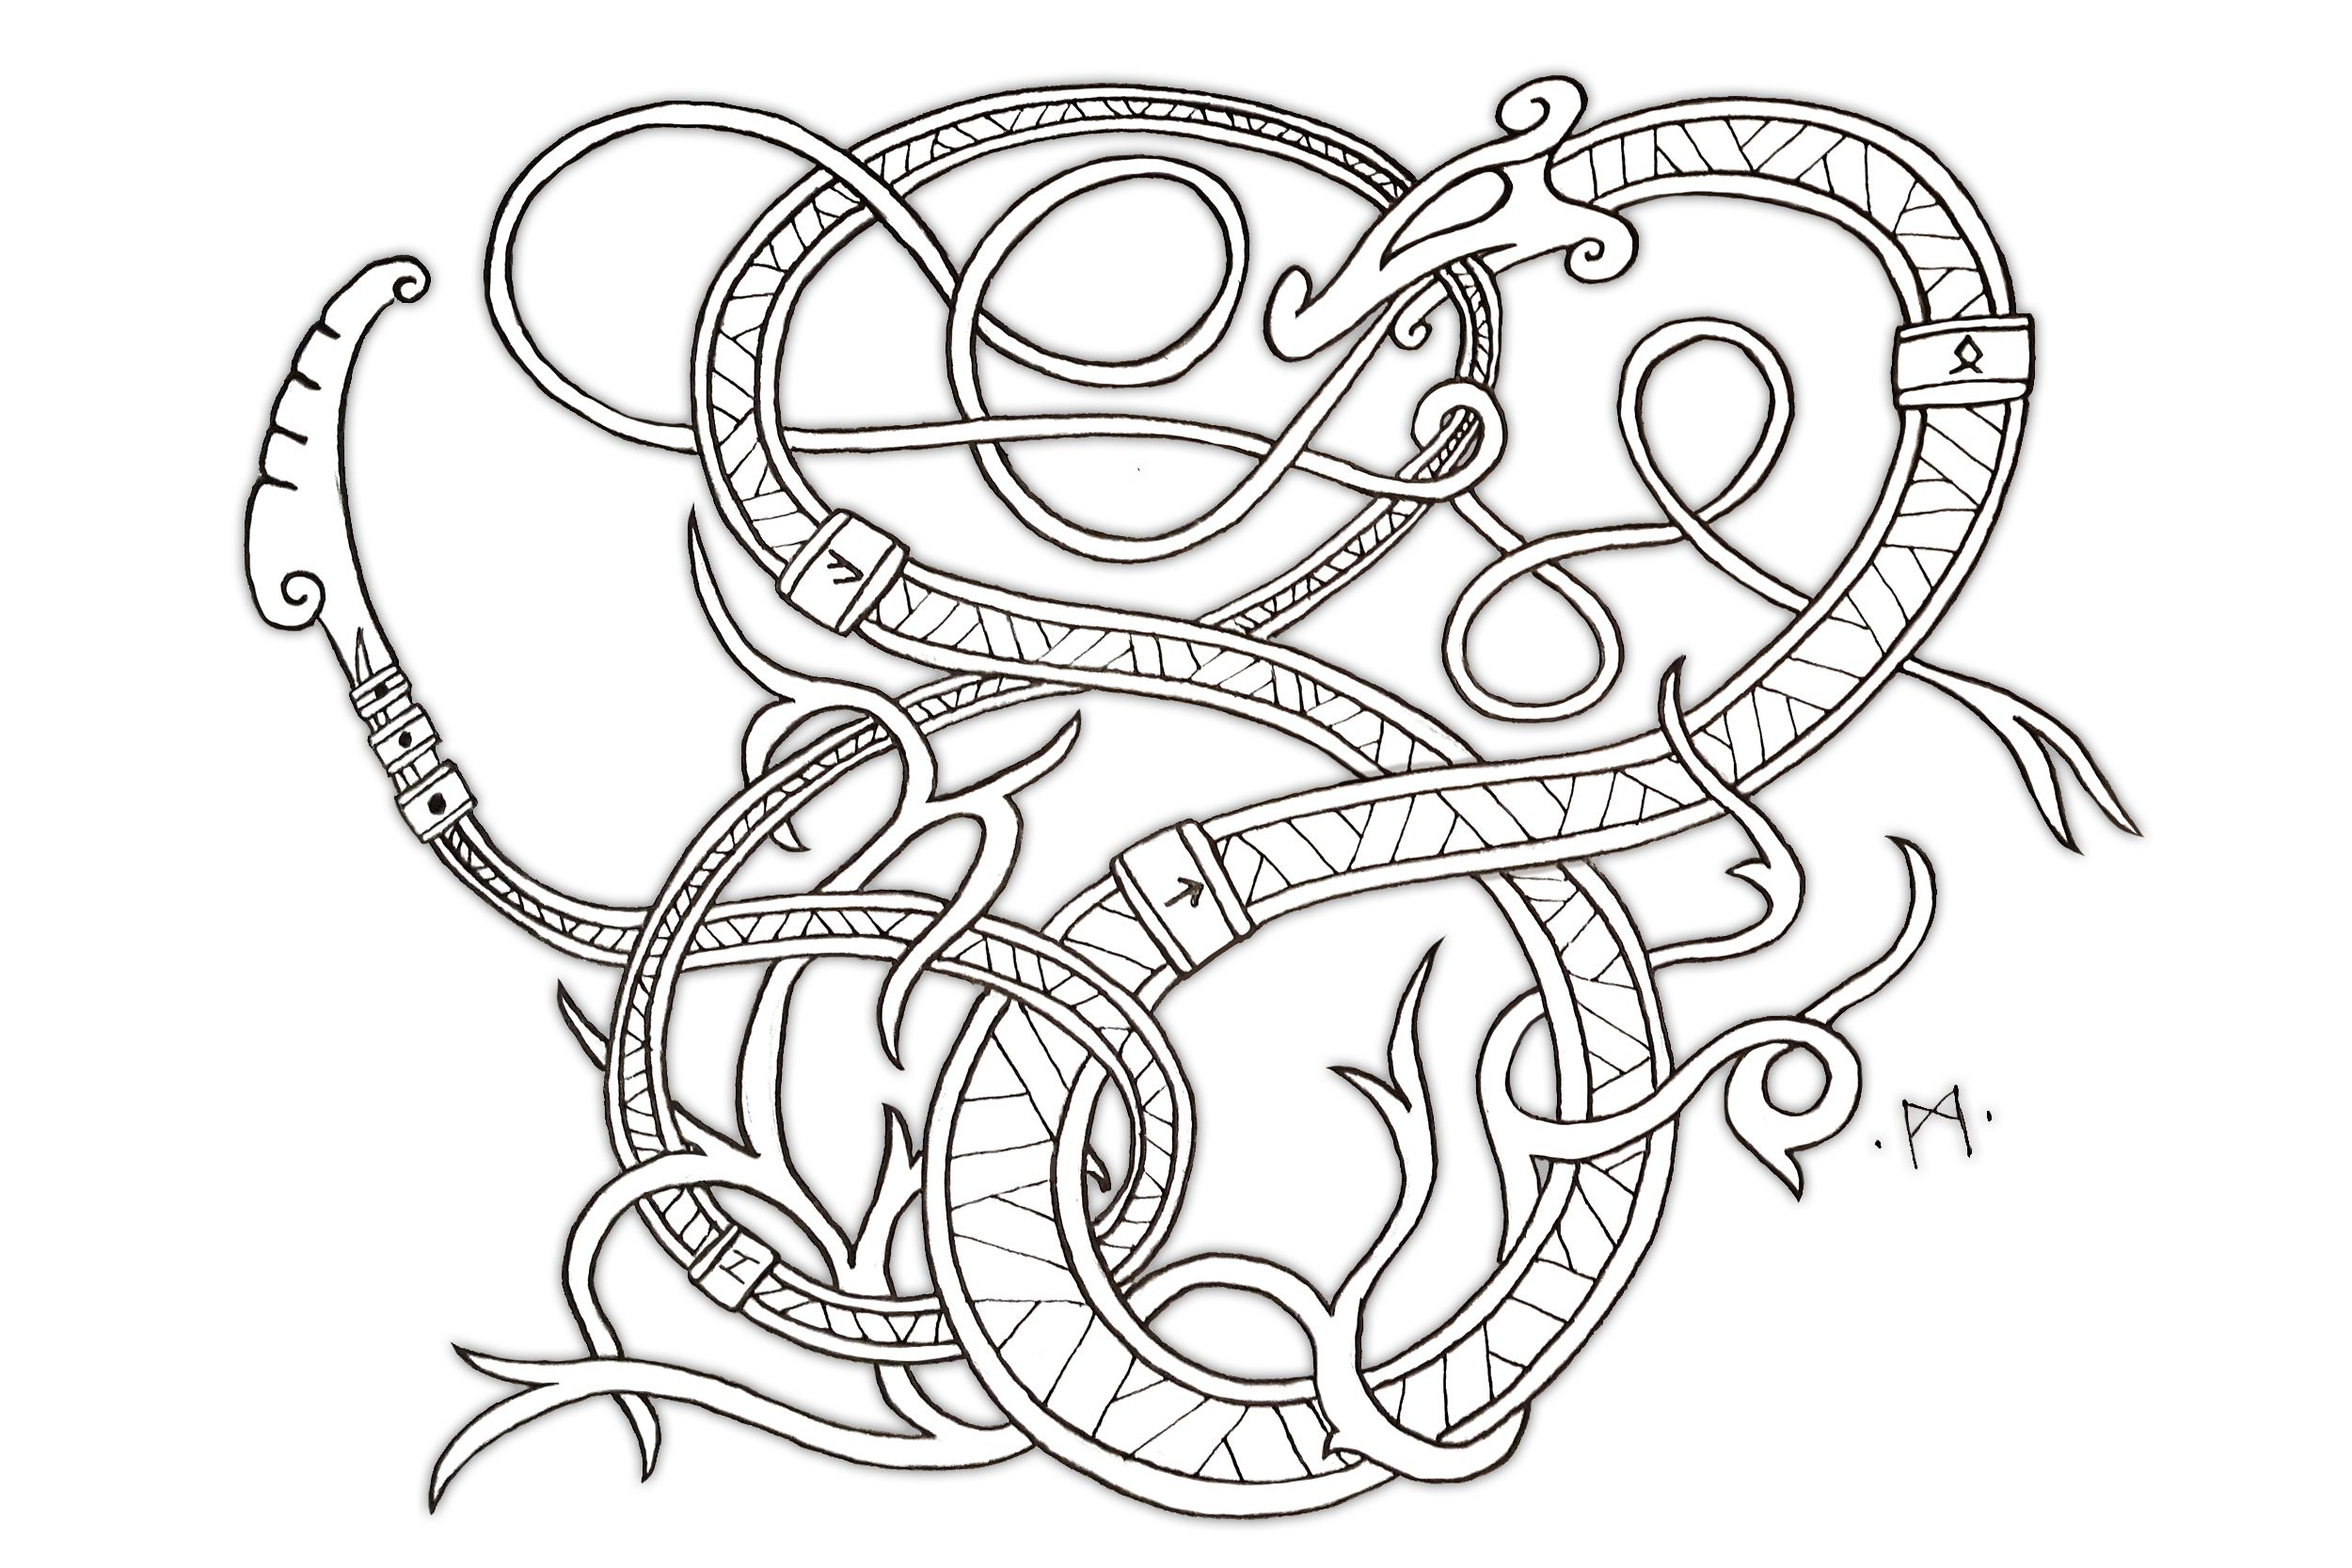 Some new knotwork I drew up for a youtube video on drawing serpents ...